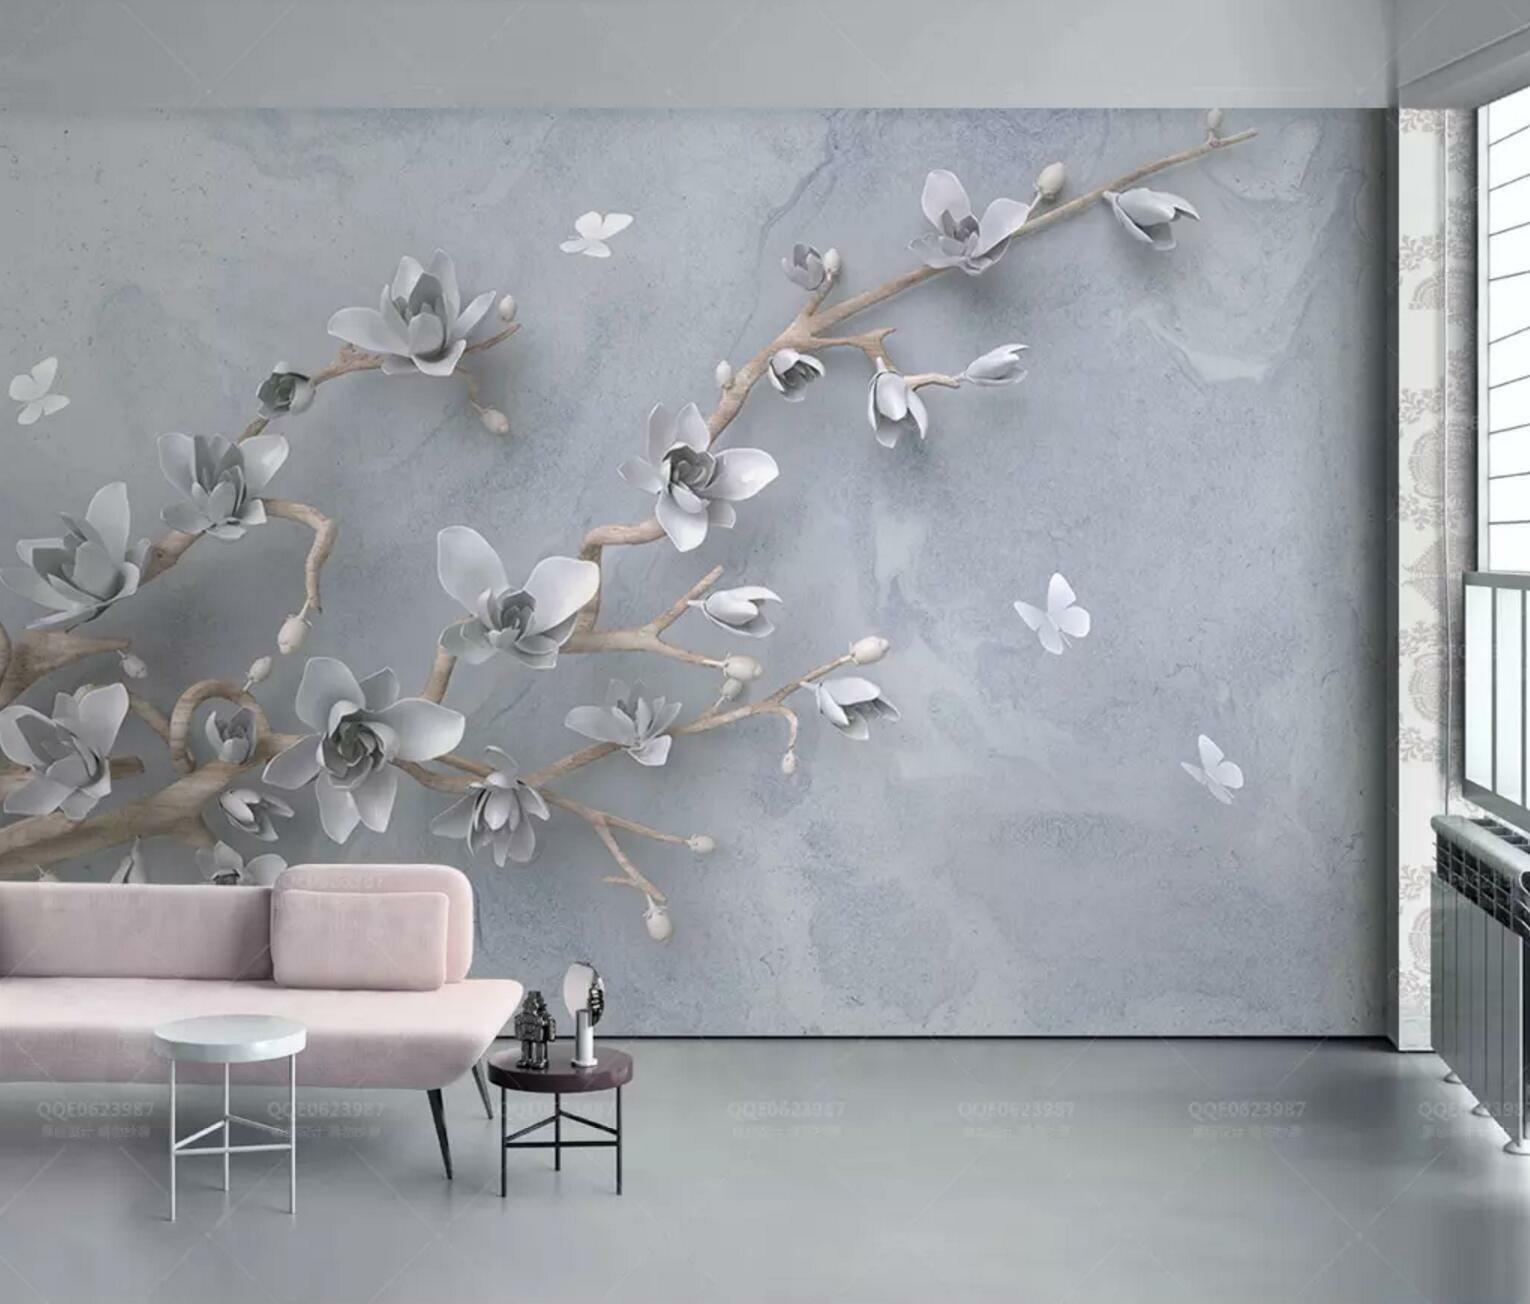 3D Magnolia 7734 Wall Paper Exclusive MXY Wallpaper Mural Decal Indoor Wall AJ